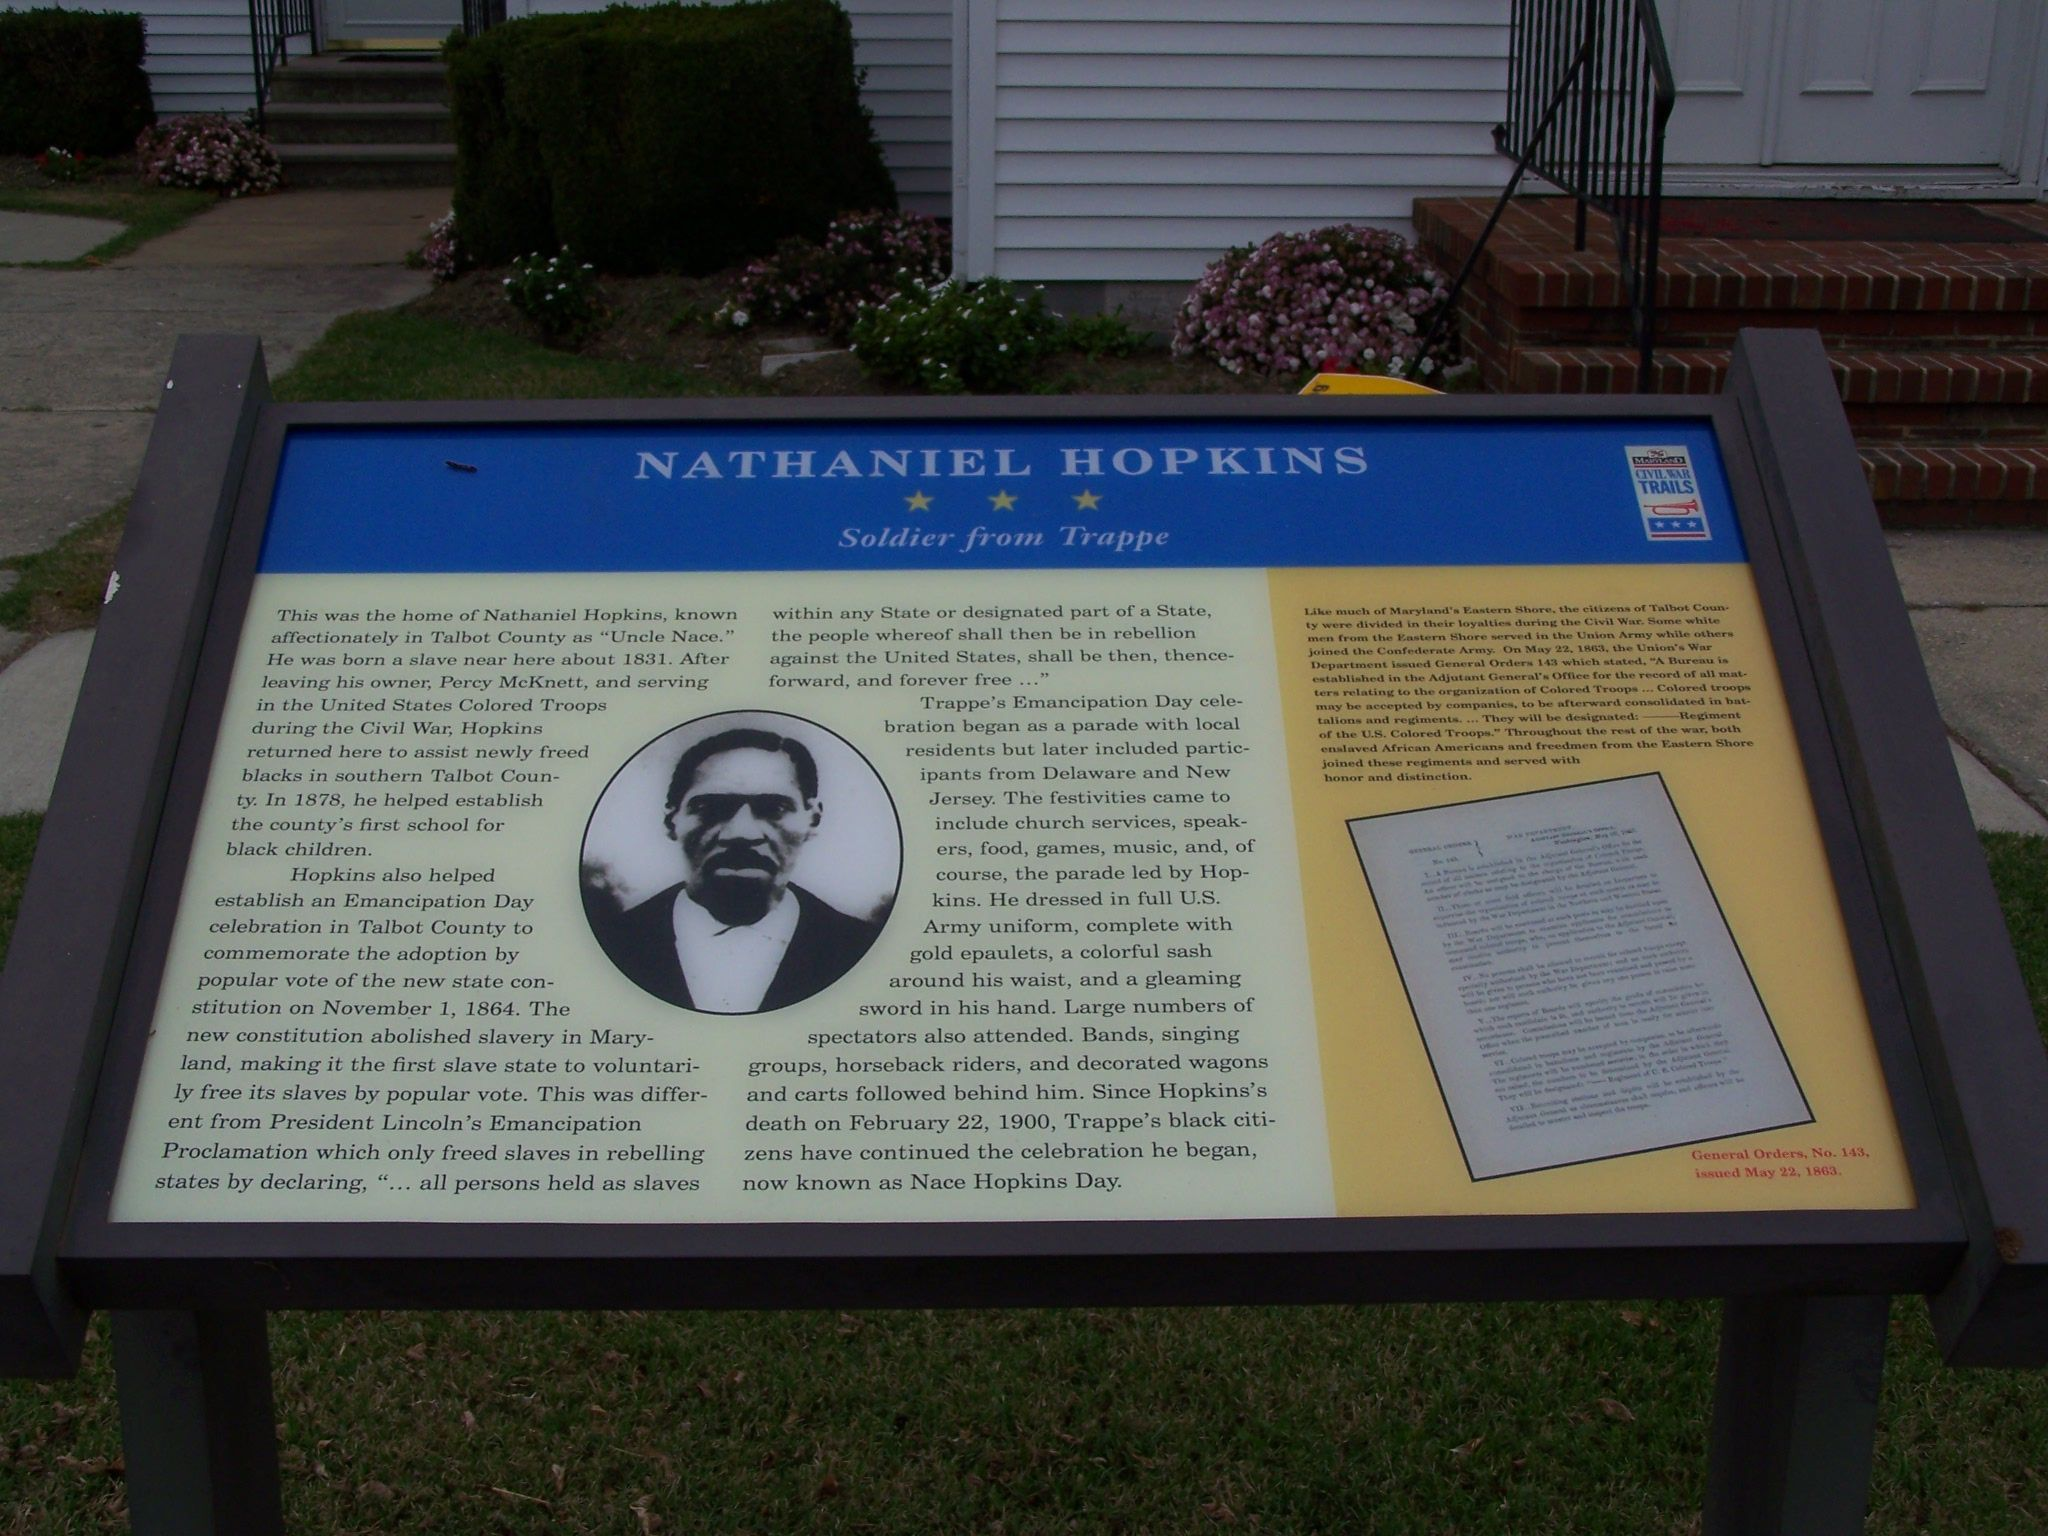 Previous version of the marker